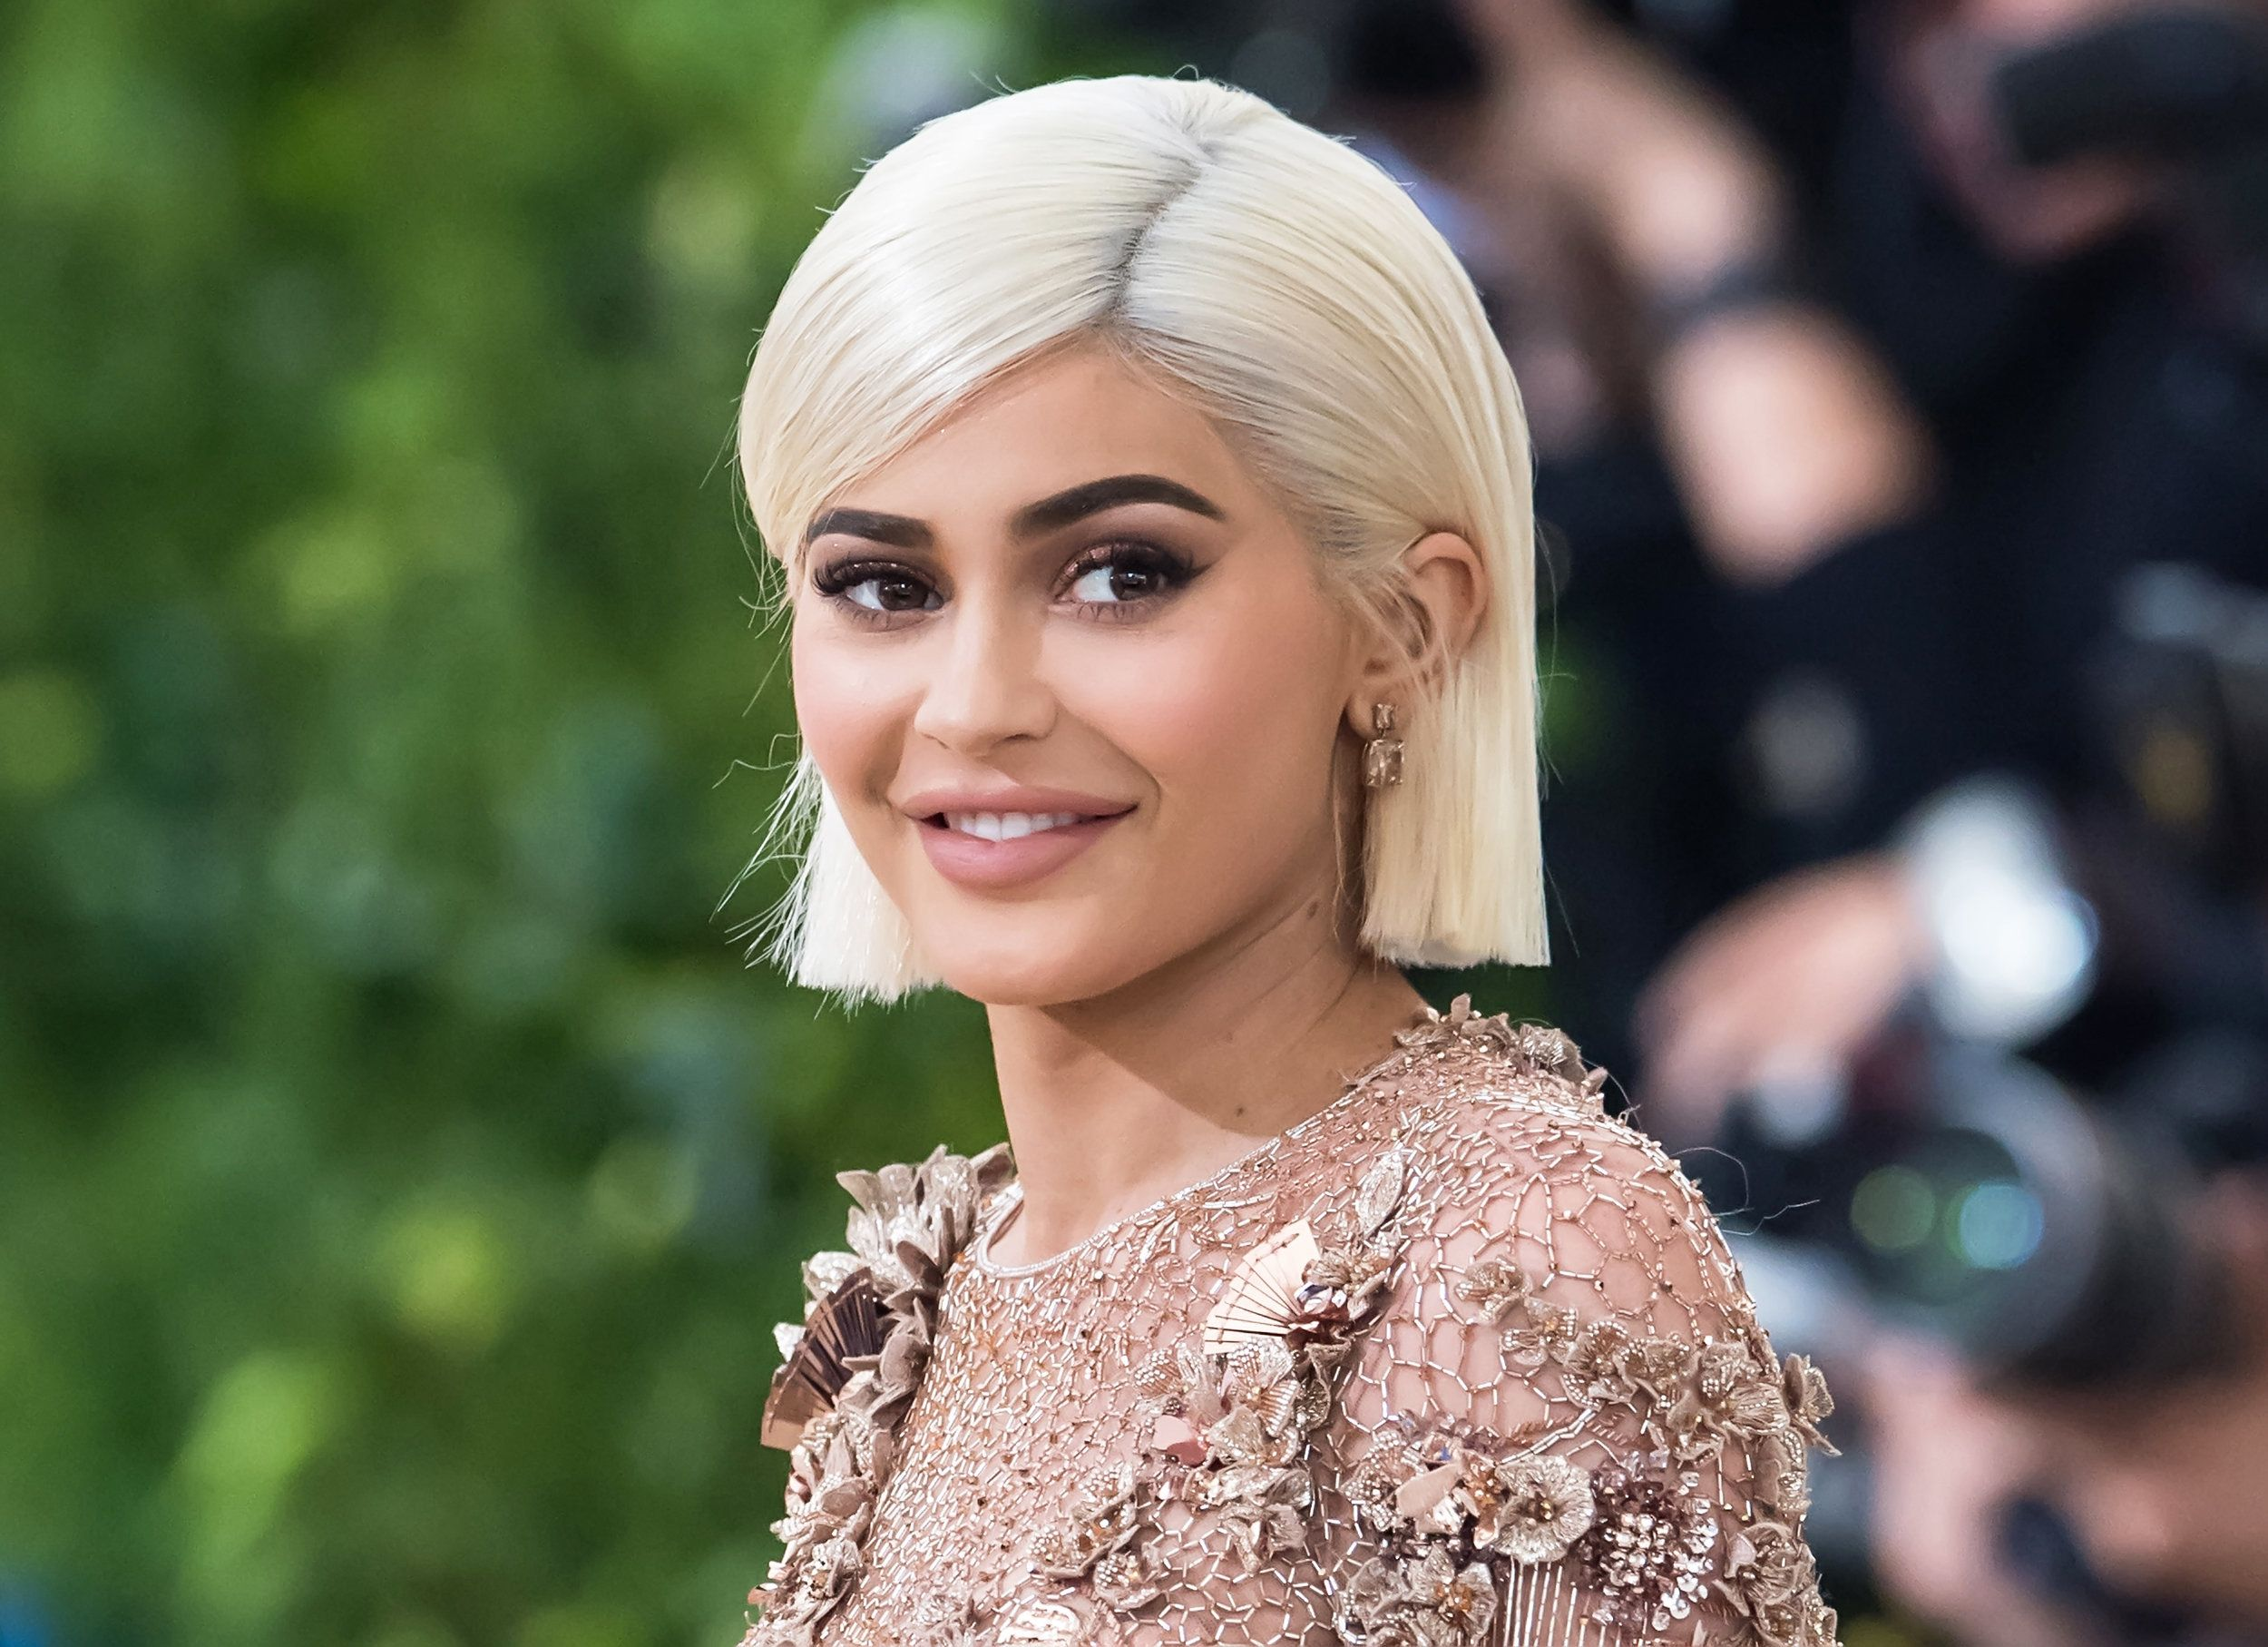 Kylie Jenner's Birthday Collection Proves Popular But Fans Are't Happy About The